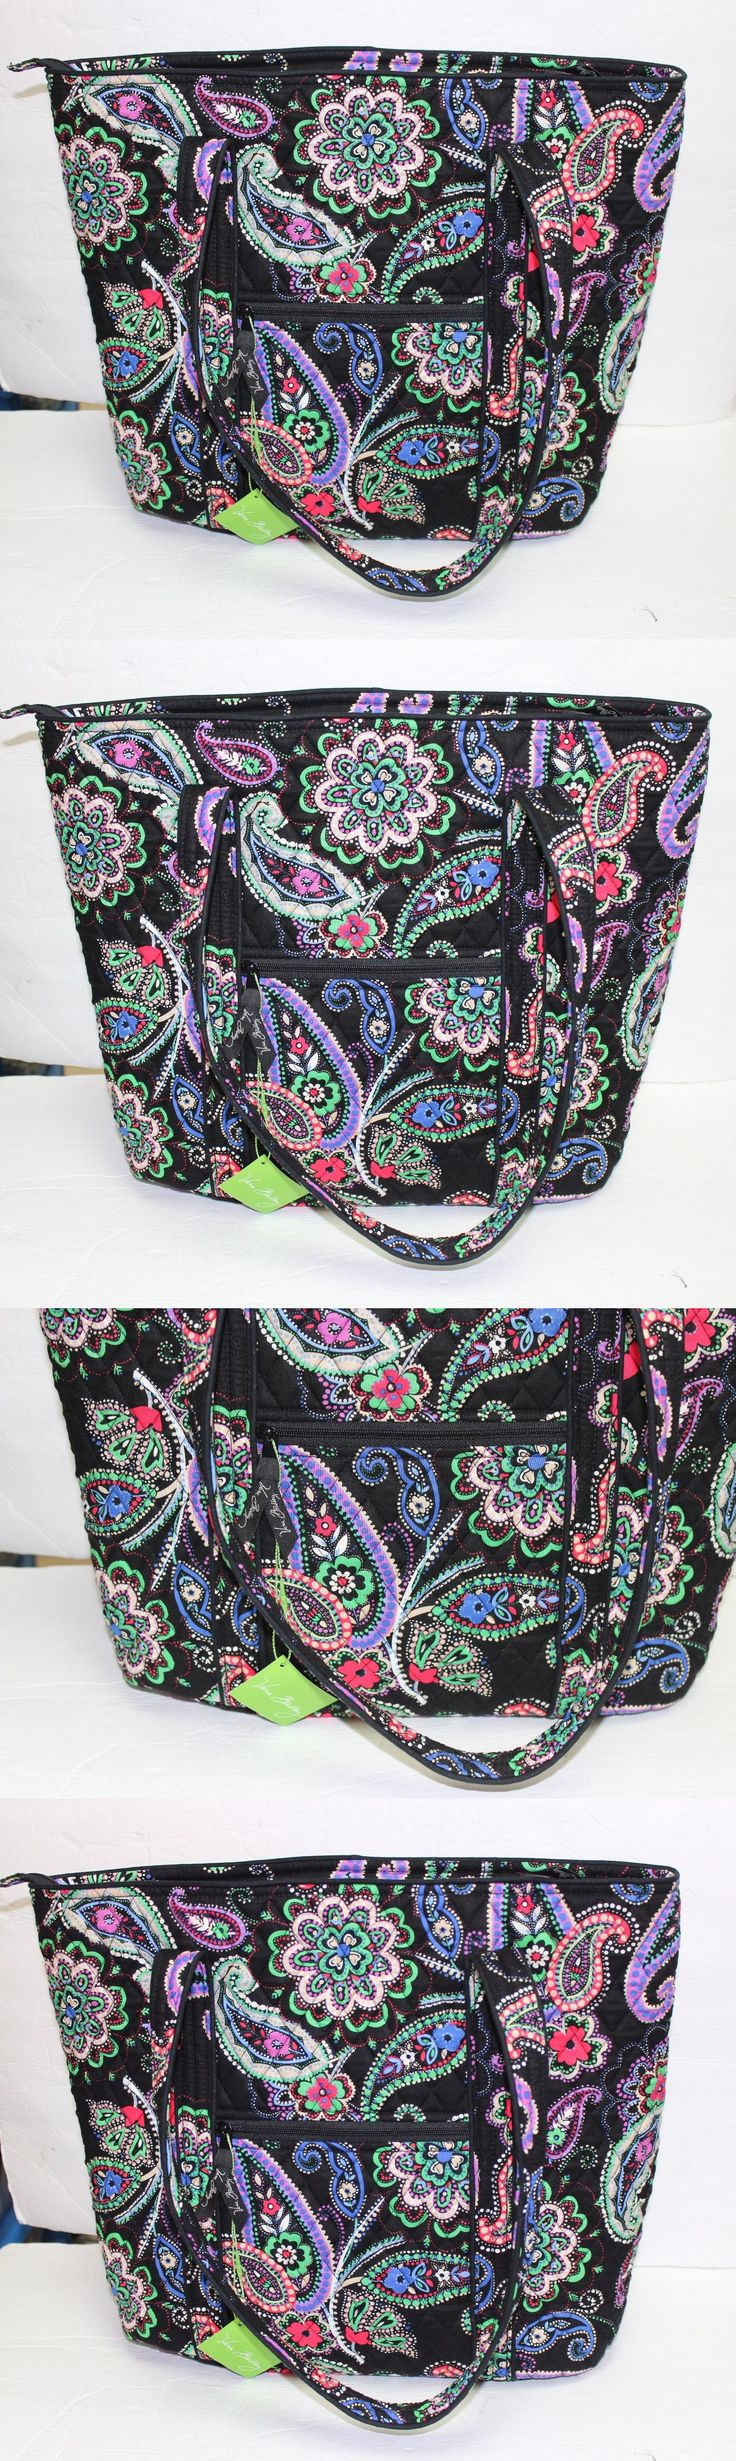 Women Bags And Accessories: Nwt Vera Bradley Vera Xl Extra Large Tote Bag Kiev Paisley BUY IT NOW ONLY: $59.95